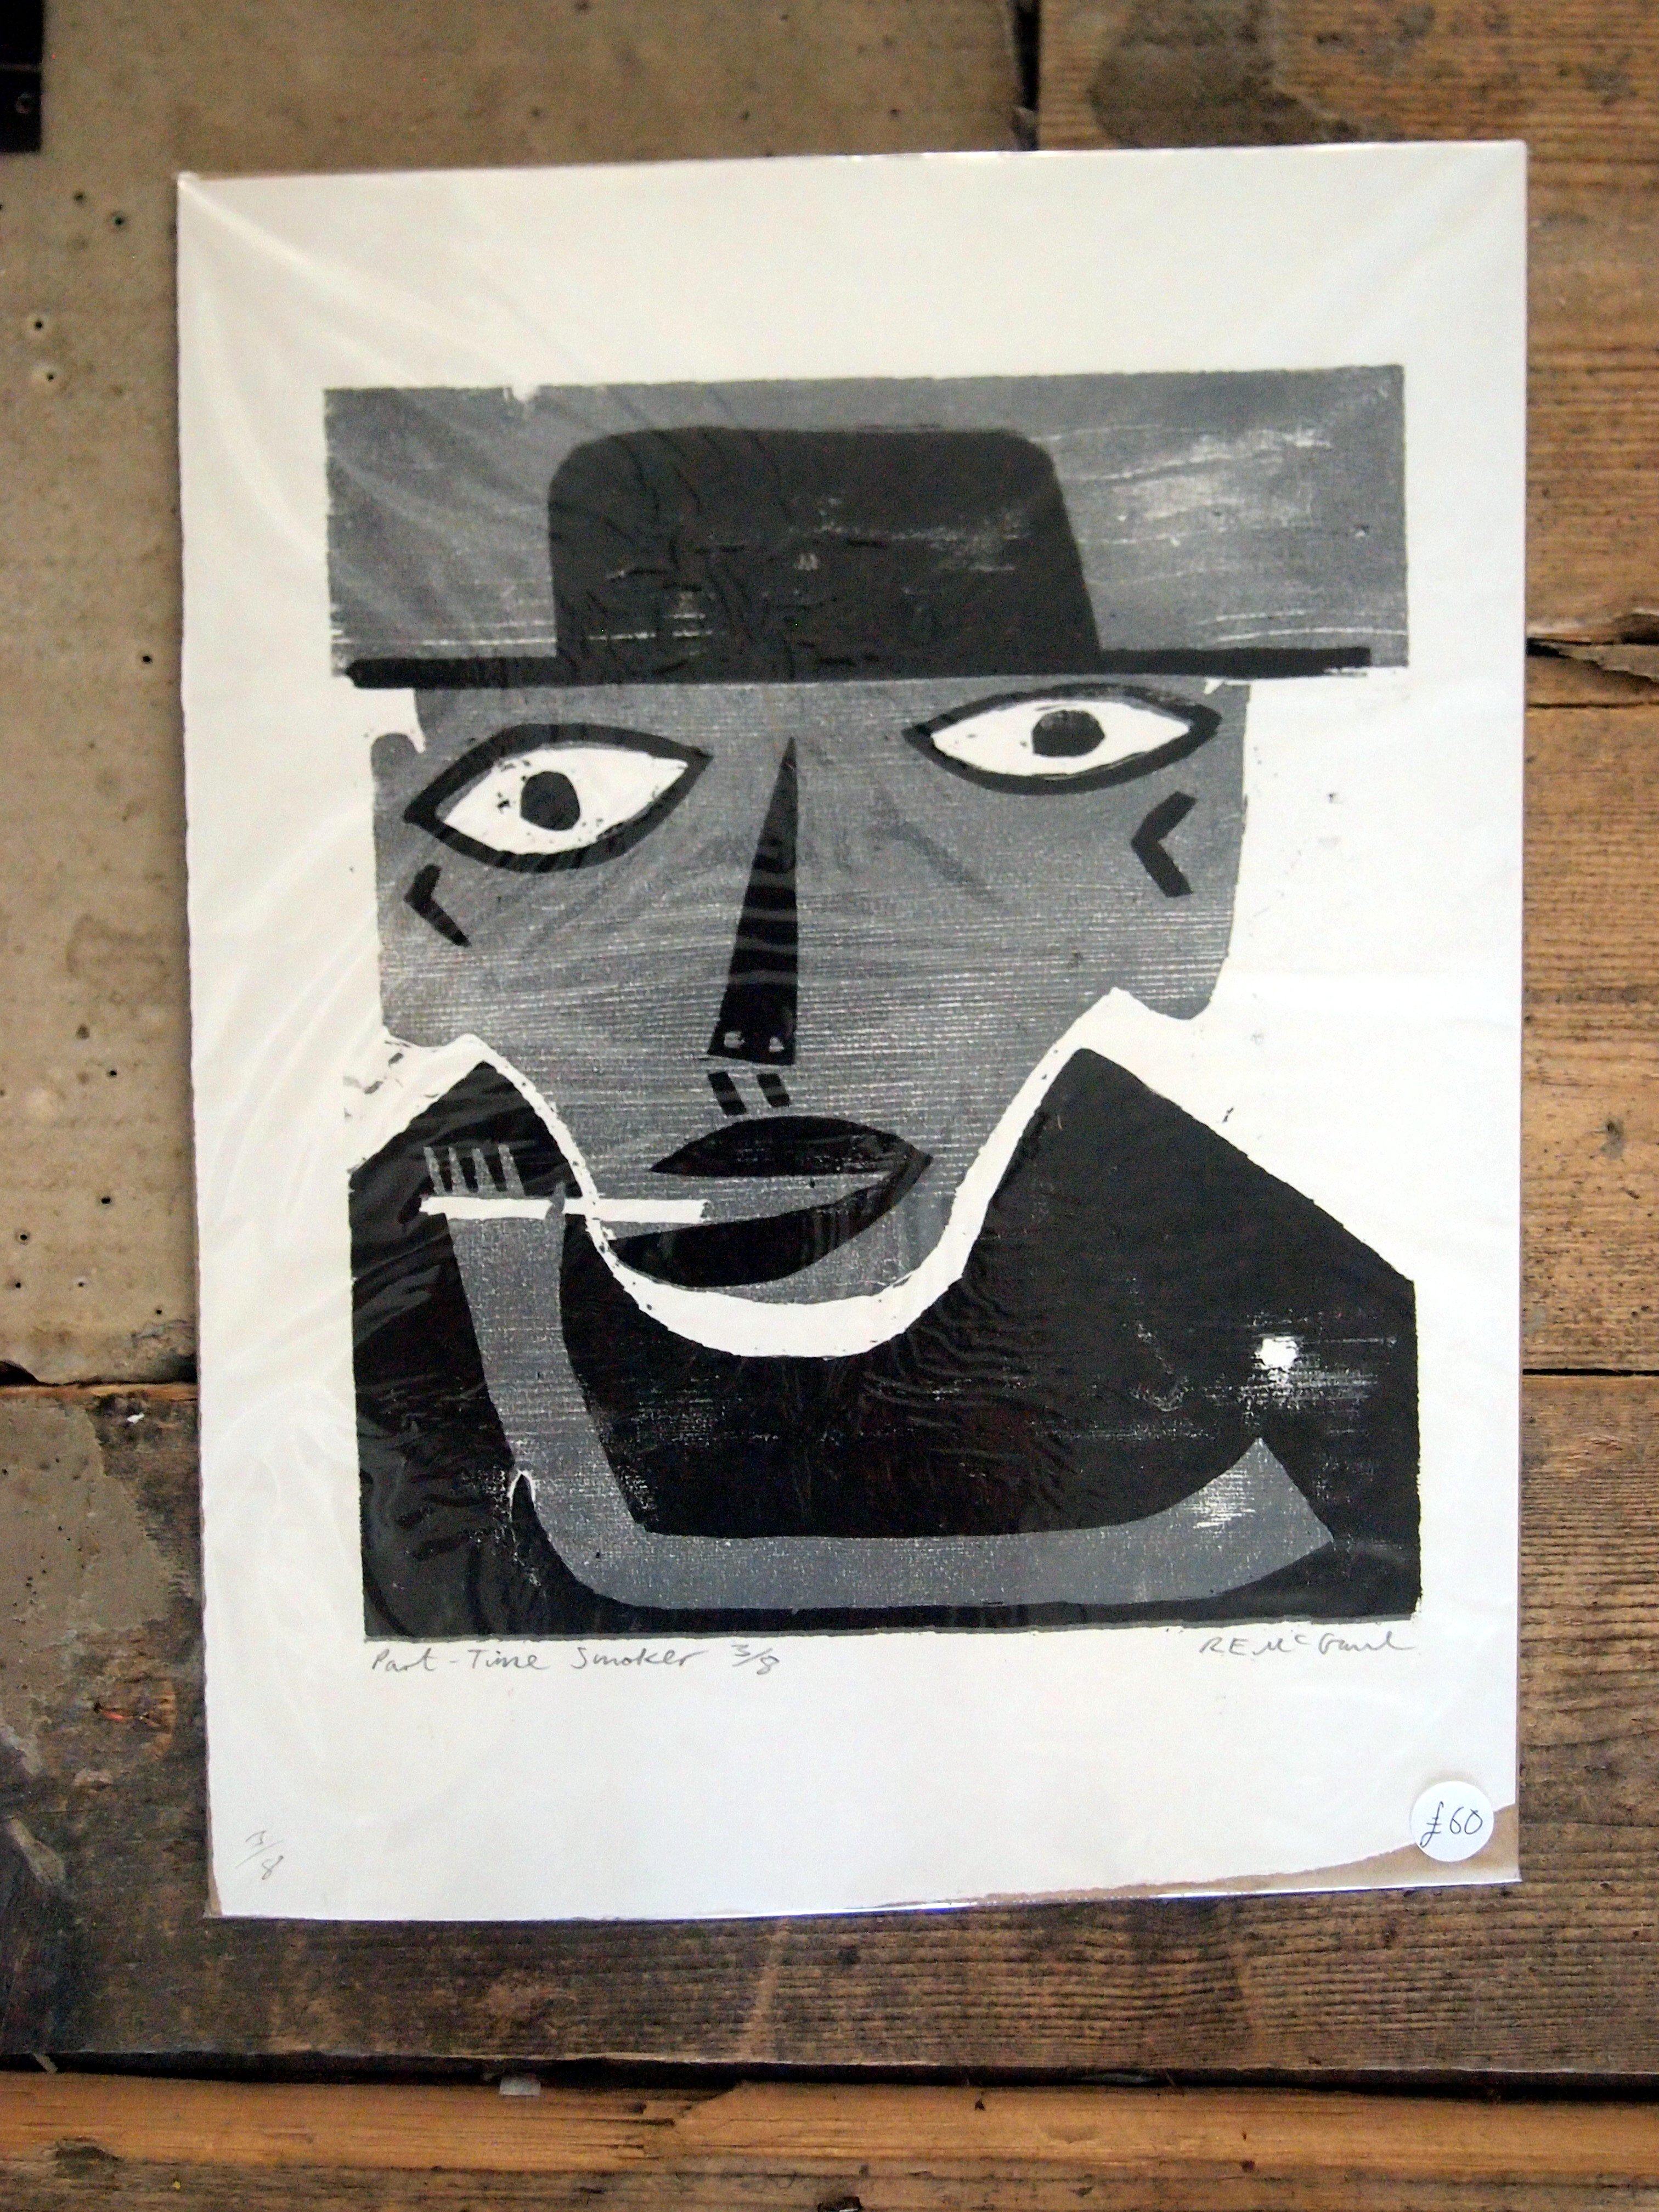 Part Time Smoker by RE McGaul, unframed